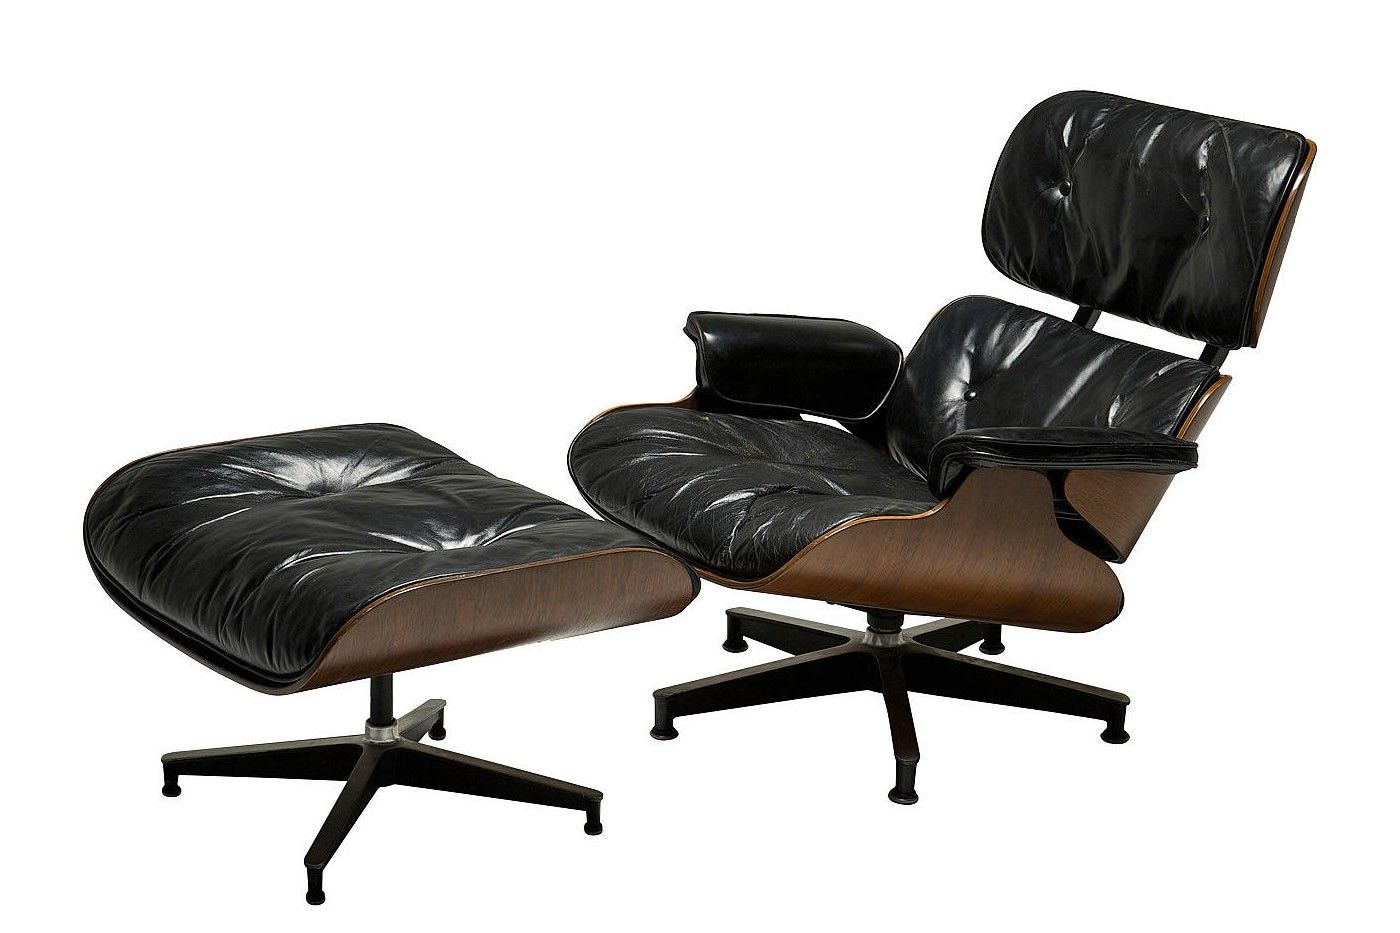 fauteuil et ottomane mod le 670 671 par charles et ray eames pour herman miller en vente sur pamono. Black Bedroom Furniture Sets. Home Design Ideas